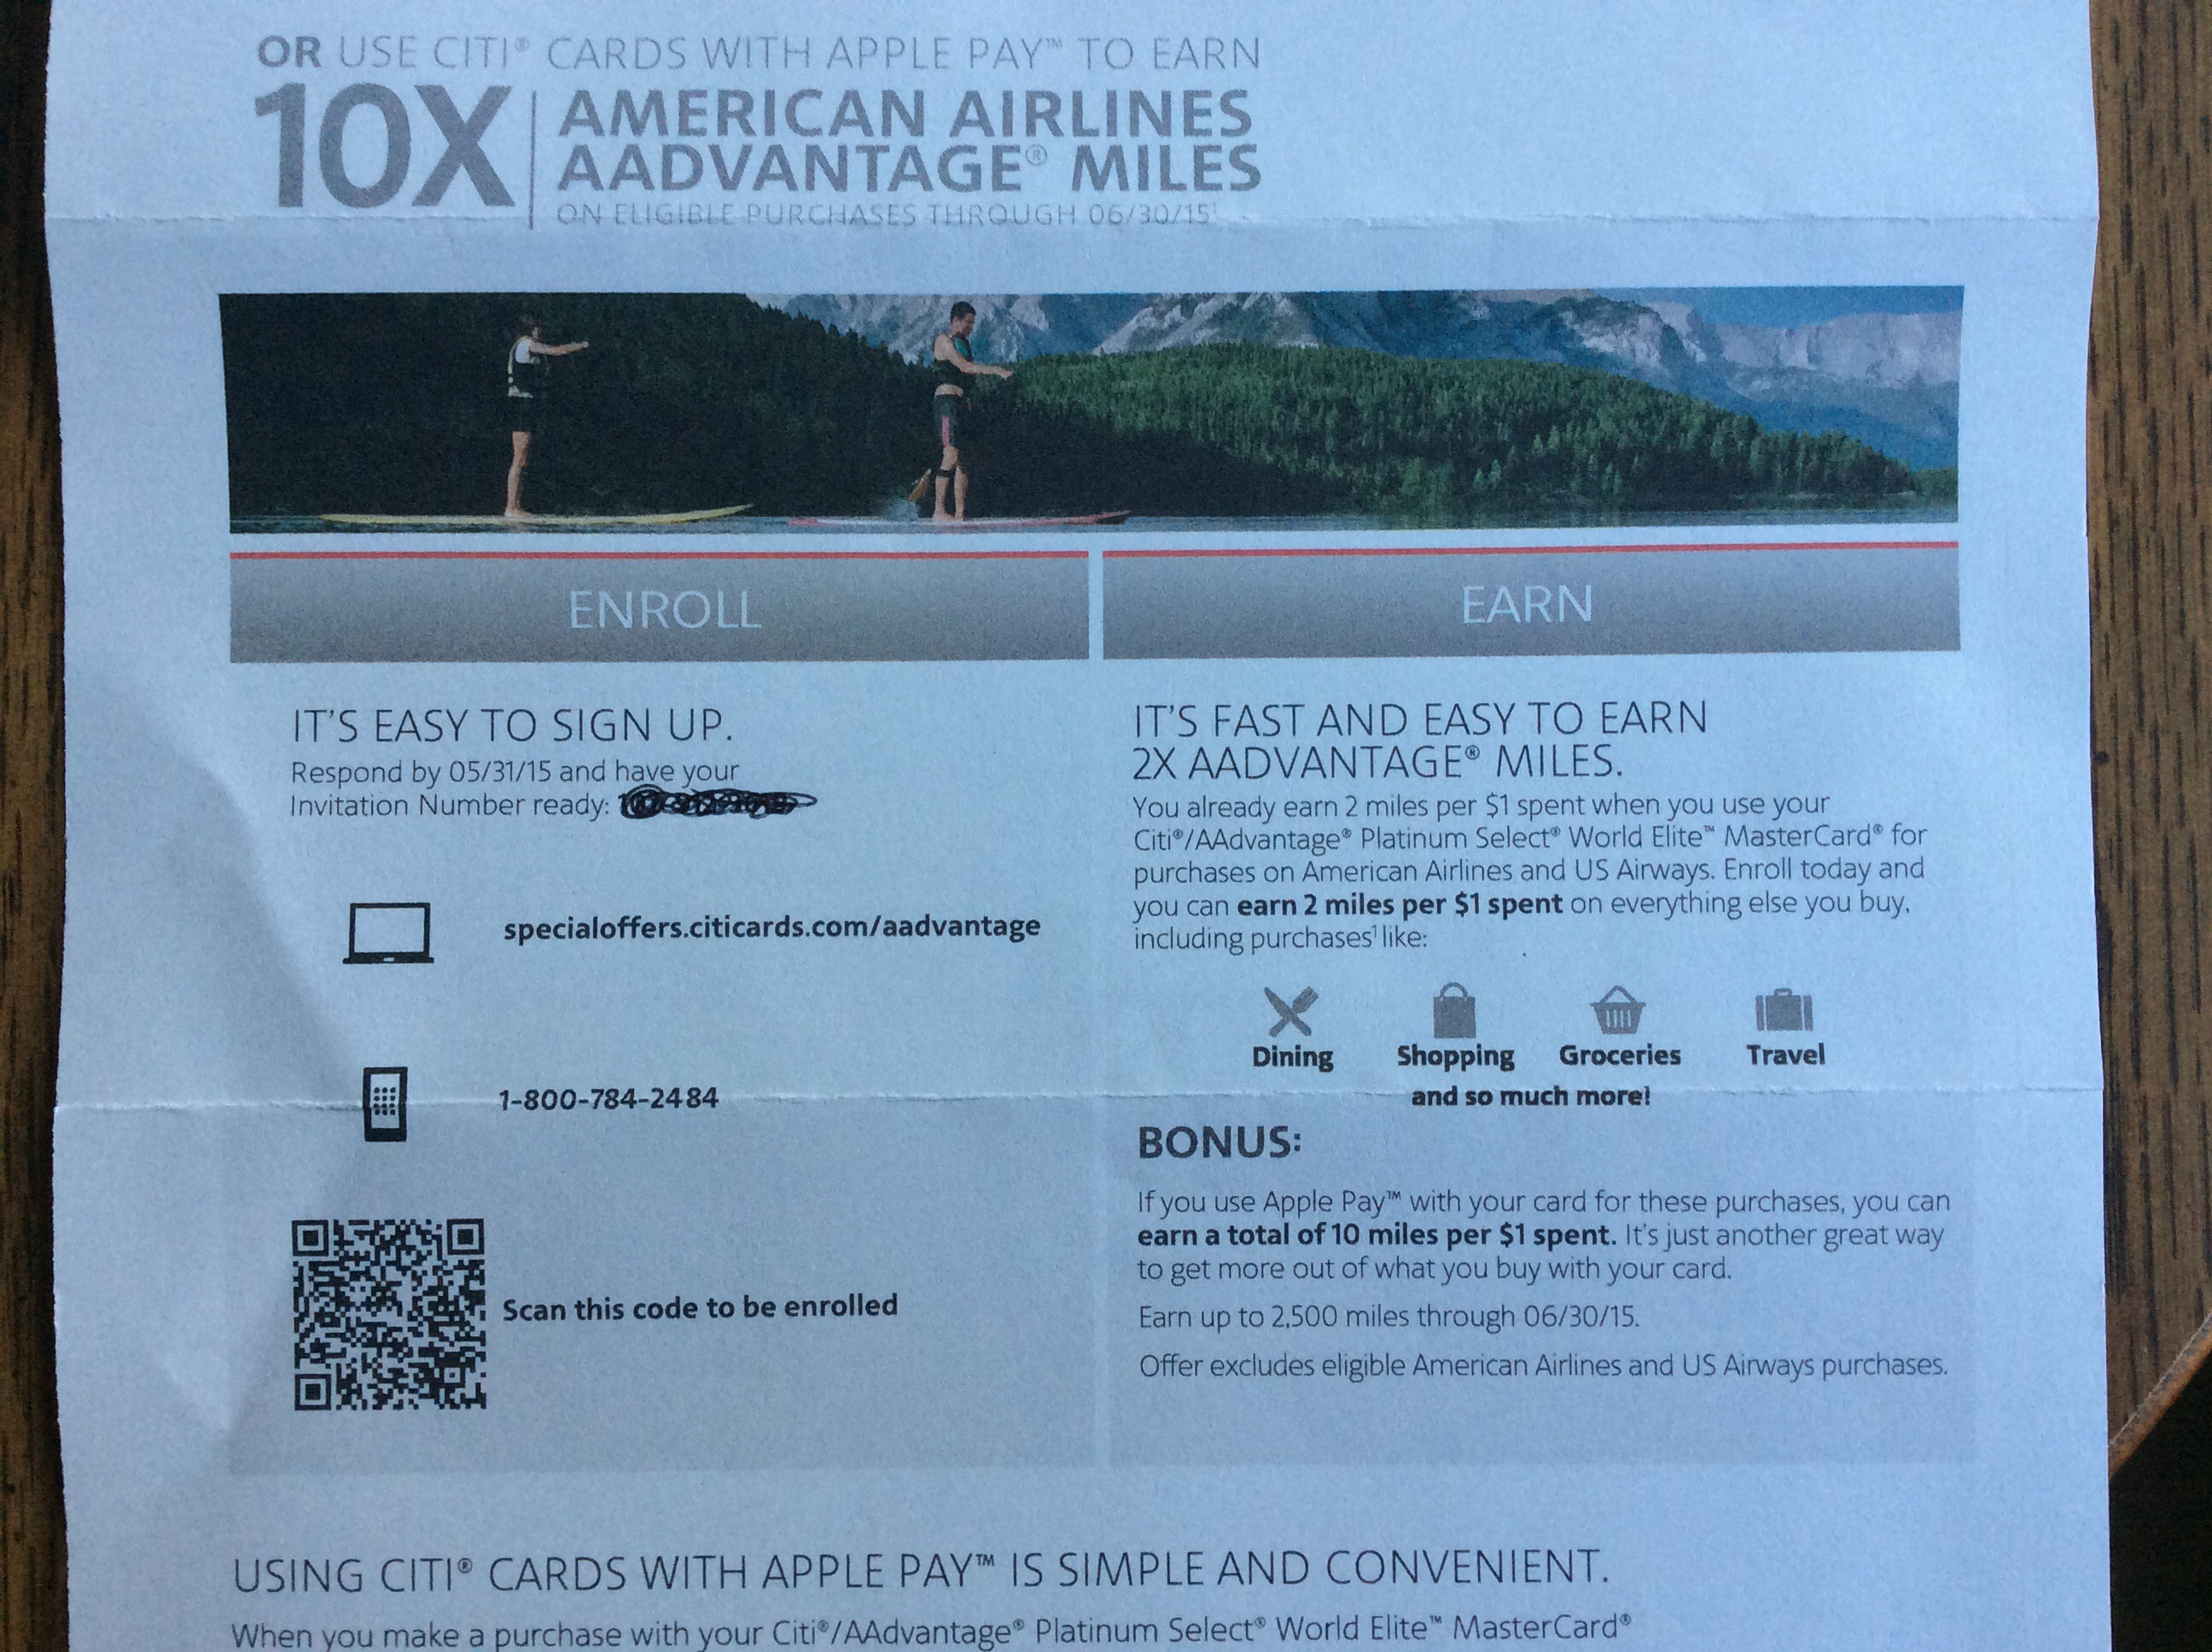 10x American Airlines Miles With Apple Pay